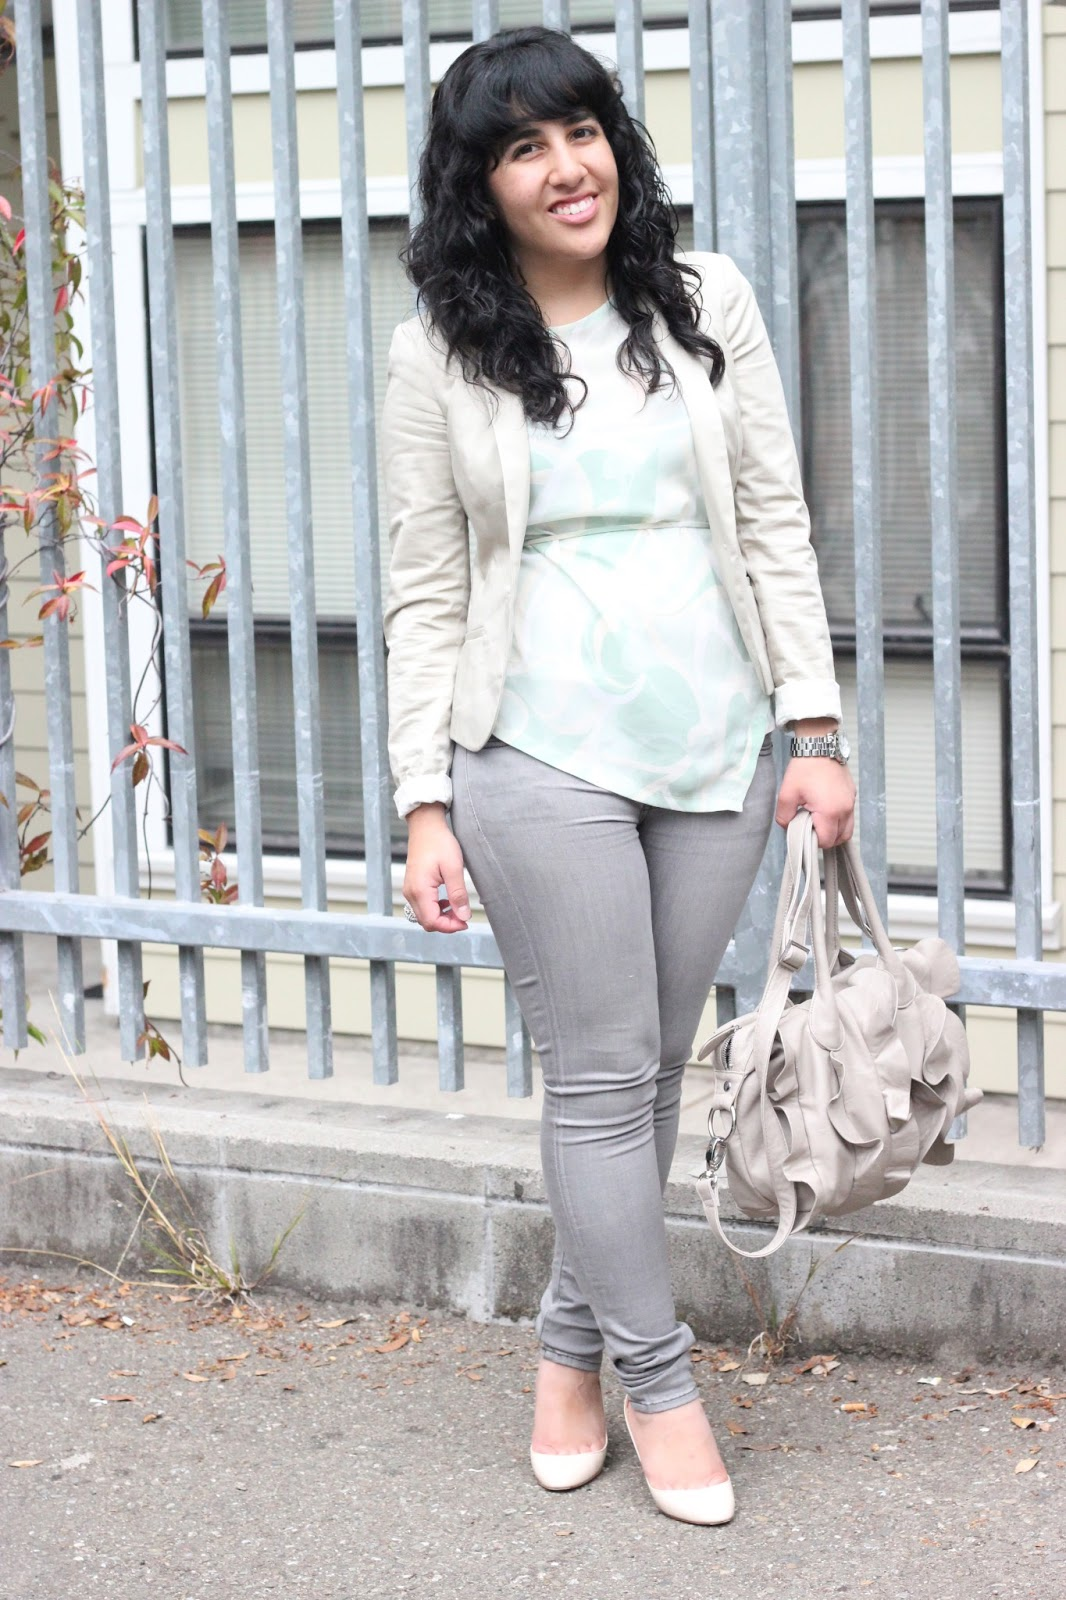 Casual White Jeans Outfit Summer Sweater And Jeans Outfit Grey Jumper Outfit Classy Jeans Outfit Gray Jeans Outfit Light Jeans Outfit White Jeans Summer Tan Jeans White Denim Jeans Forward Love this look: oversized gray sweater, white skinny jeans, nude sandals.